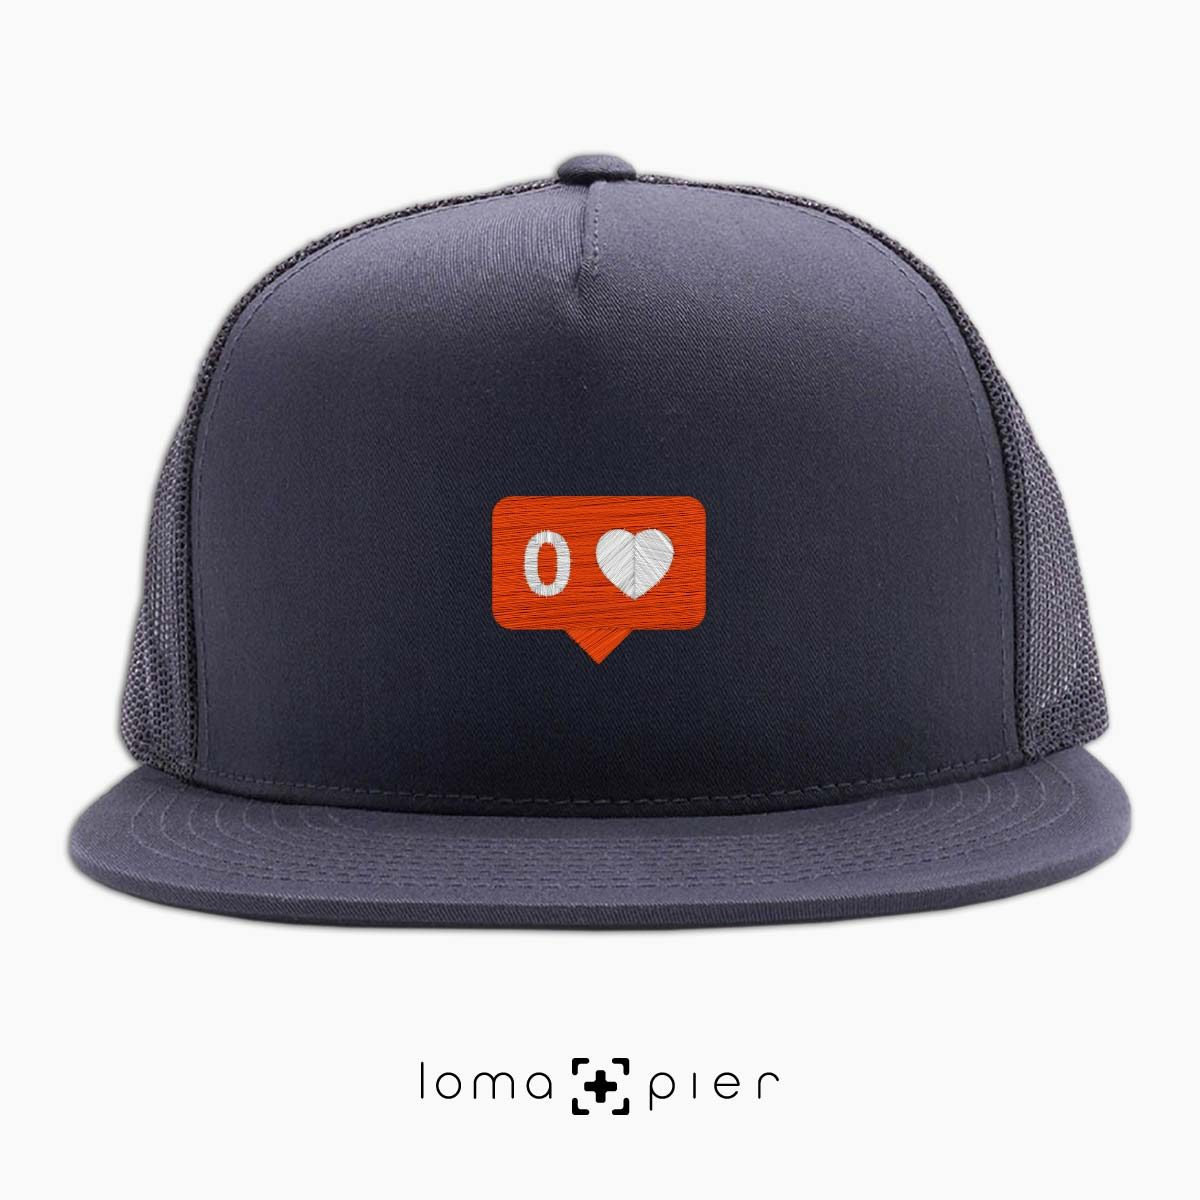 NO LOVE ironic trucker hat in charcoal by lomapier hat store